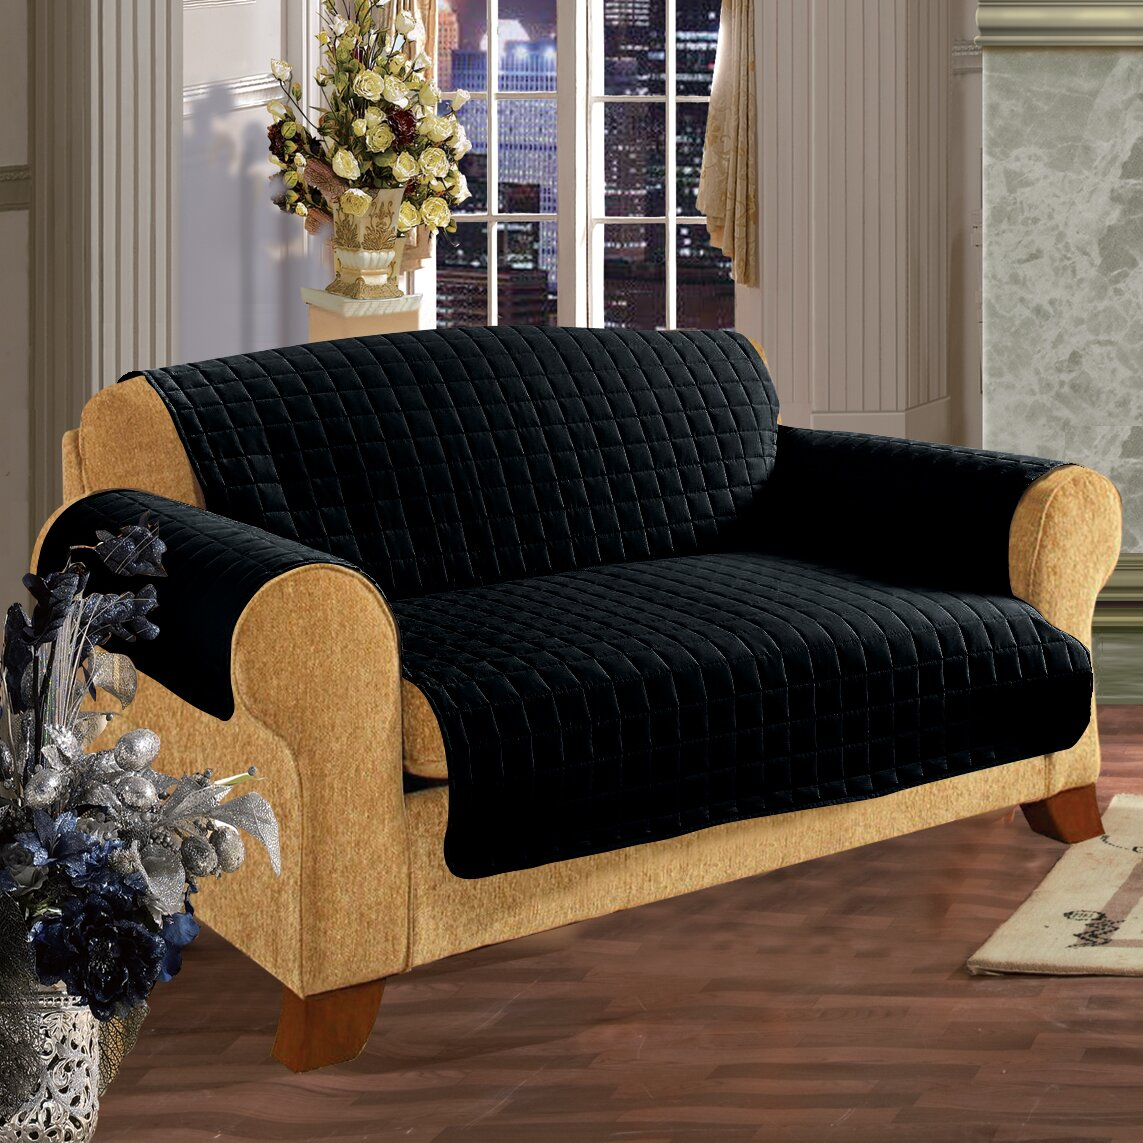 Jackson Suffolk Sofa Reviews picture on Jackson Suffolk Sofa Reviews346c40ce756706548fbb20e9a9233b51 with Jackson Suffolk Sofa Reviews, sofa 6f1c77b096e3b2728ccaf54c5cb612c0